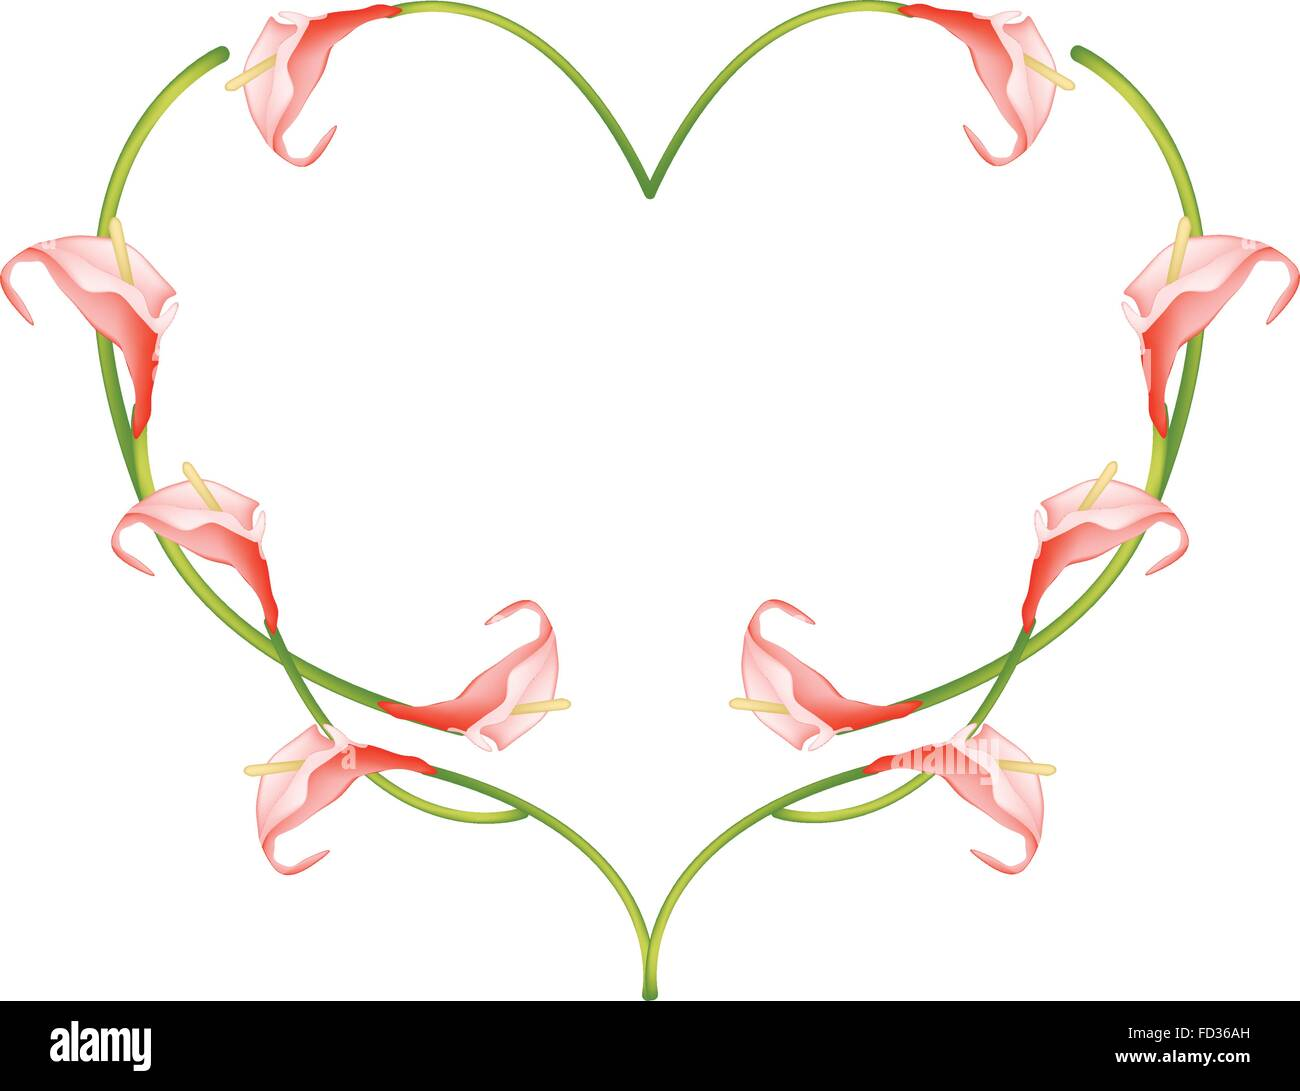 Love Concept, Illustration of Red Anthurium Flowers or Flamingo Flowers Forming in Heart Shape Isolated on White - Stock Vector